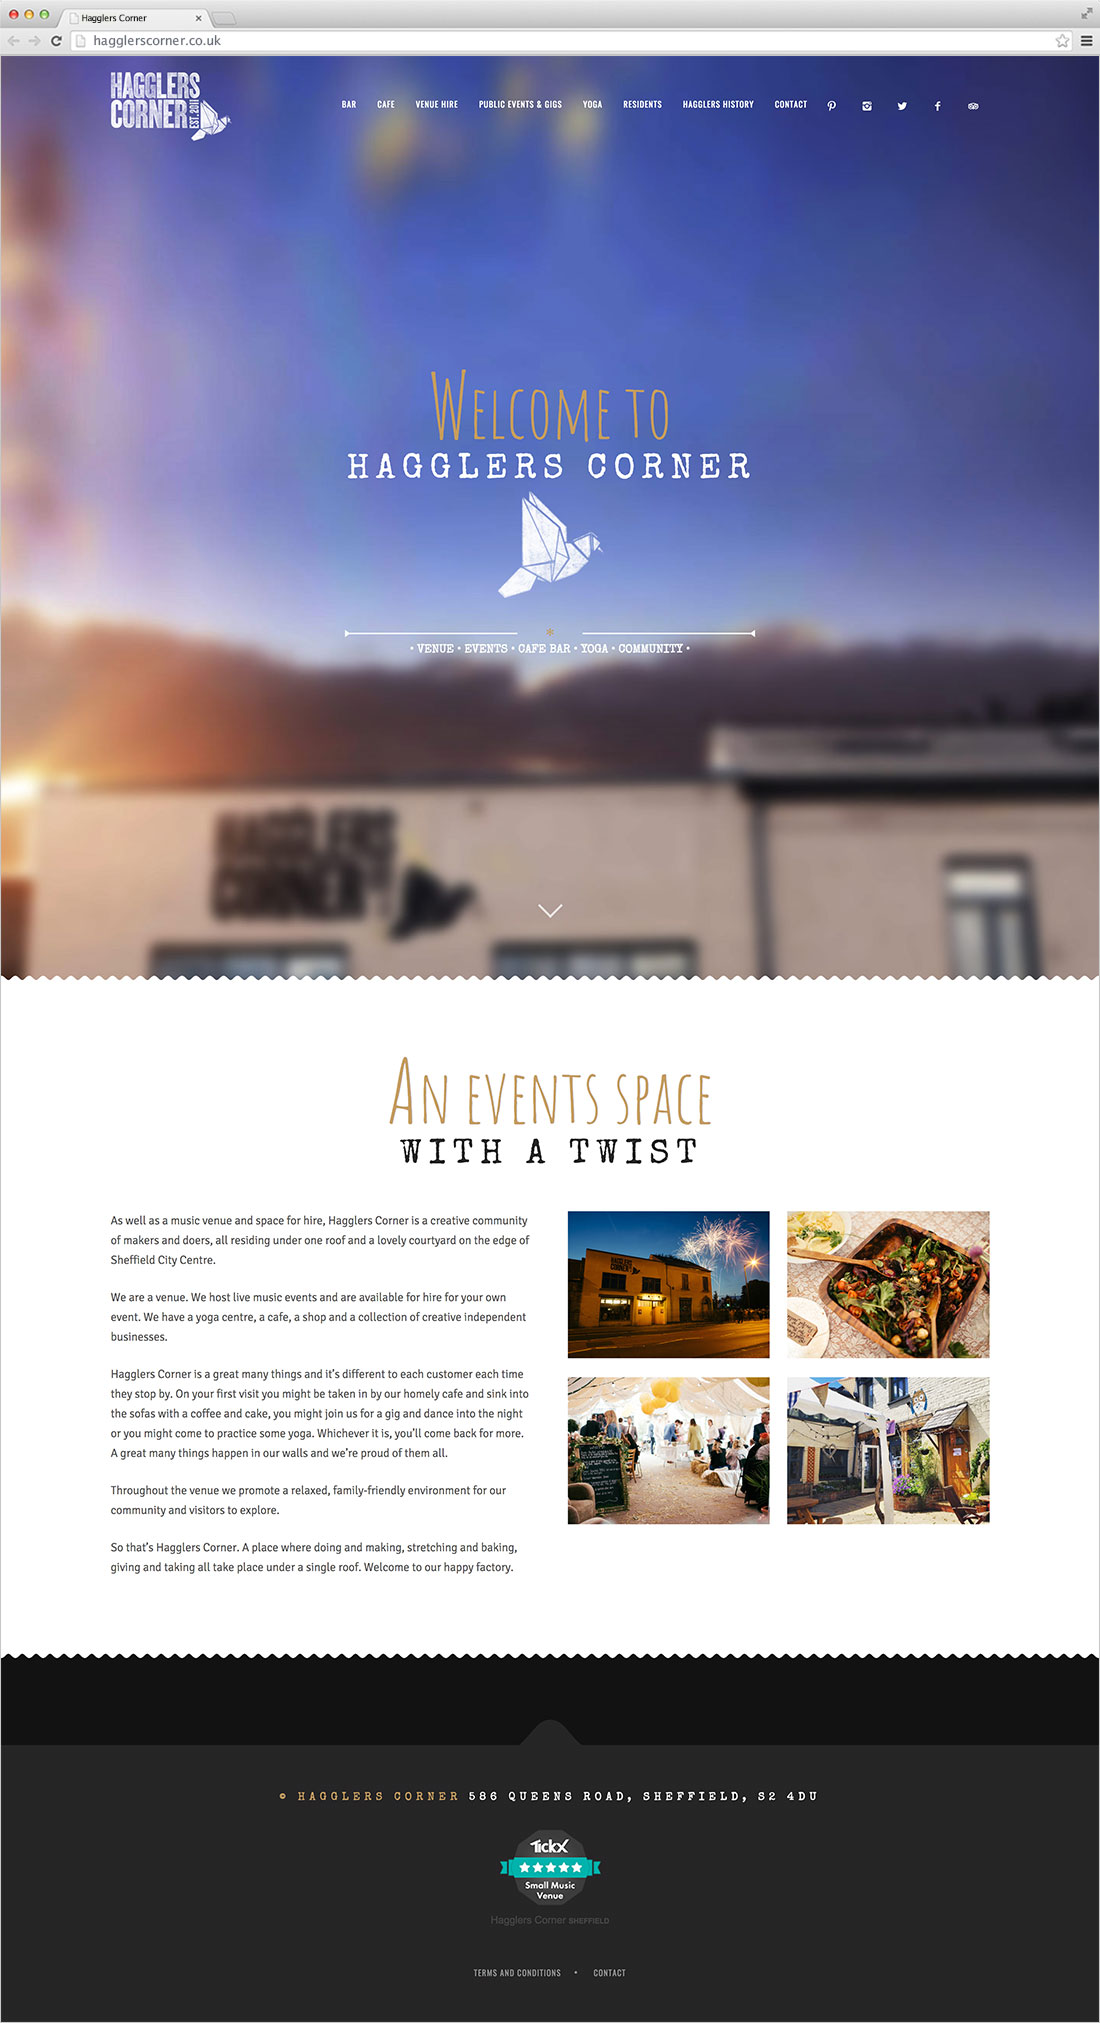 Hagglers Corner website Elbowroom Graphics